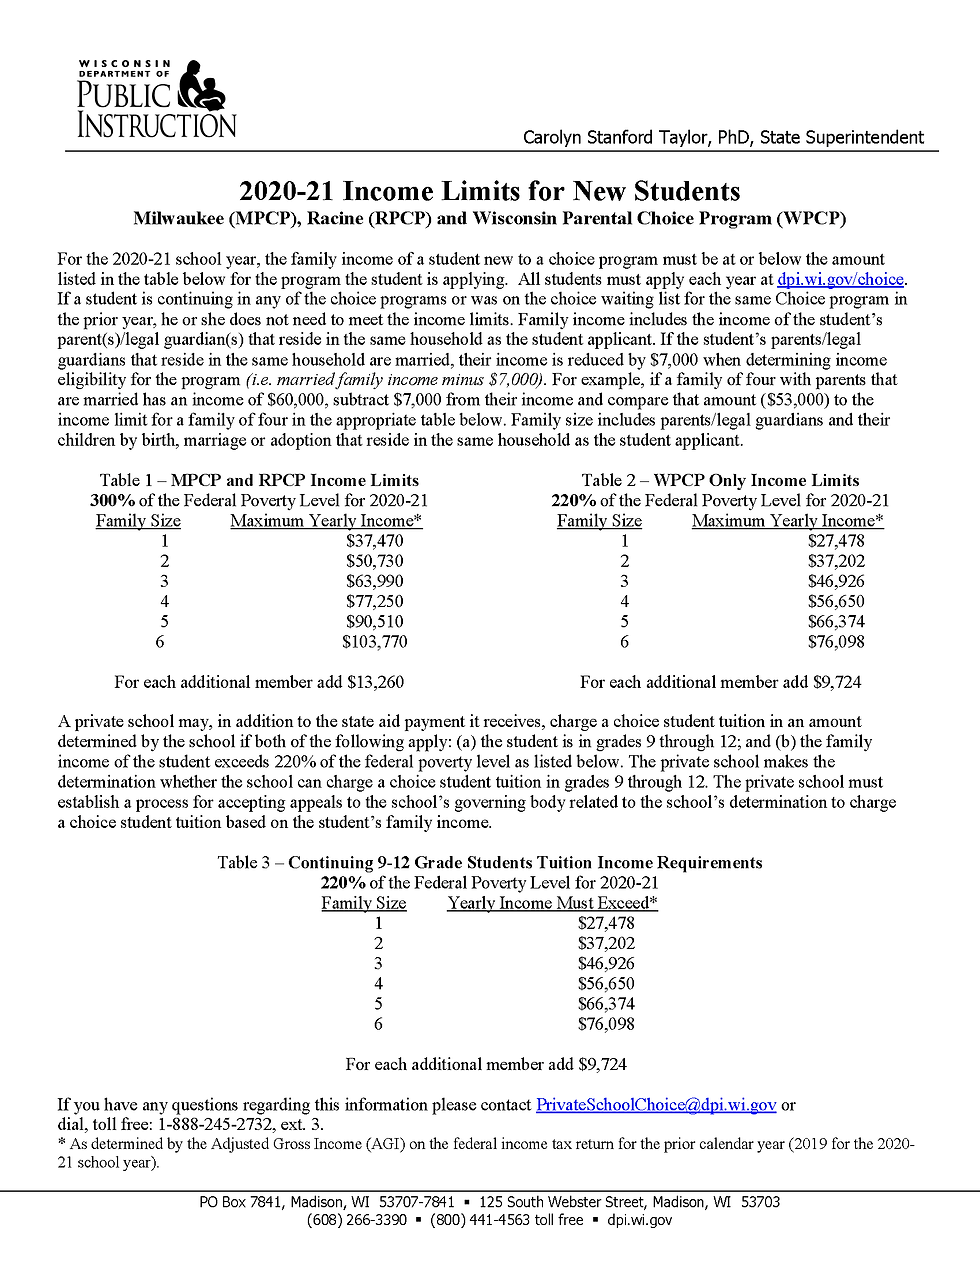 income_limit_all_programs_2020-21_final.